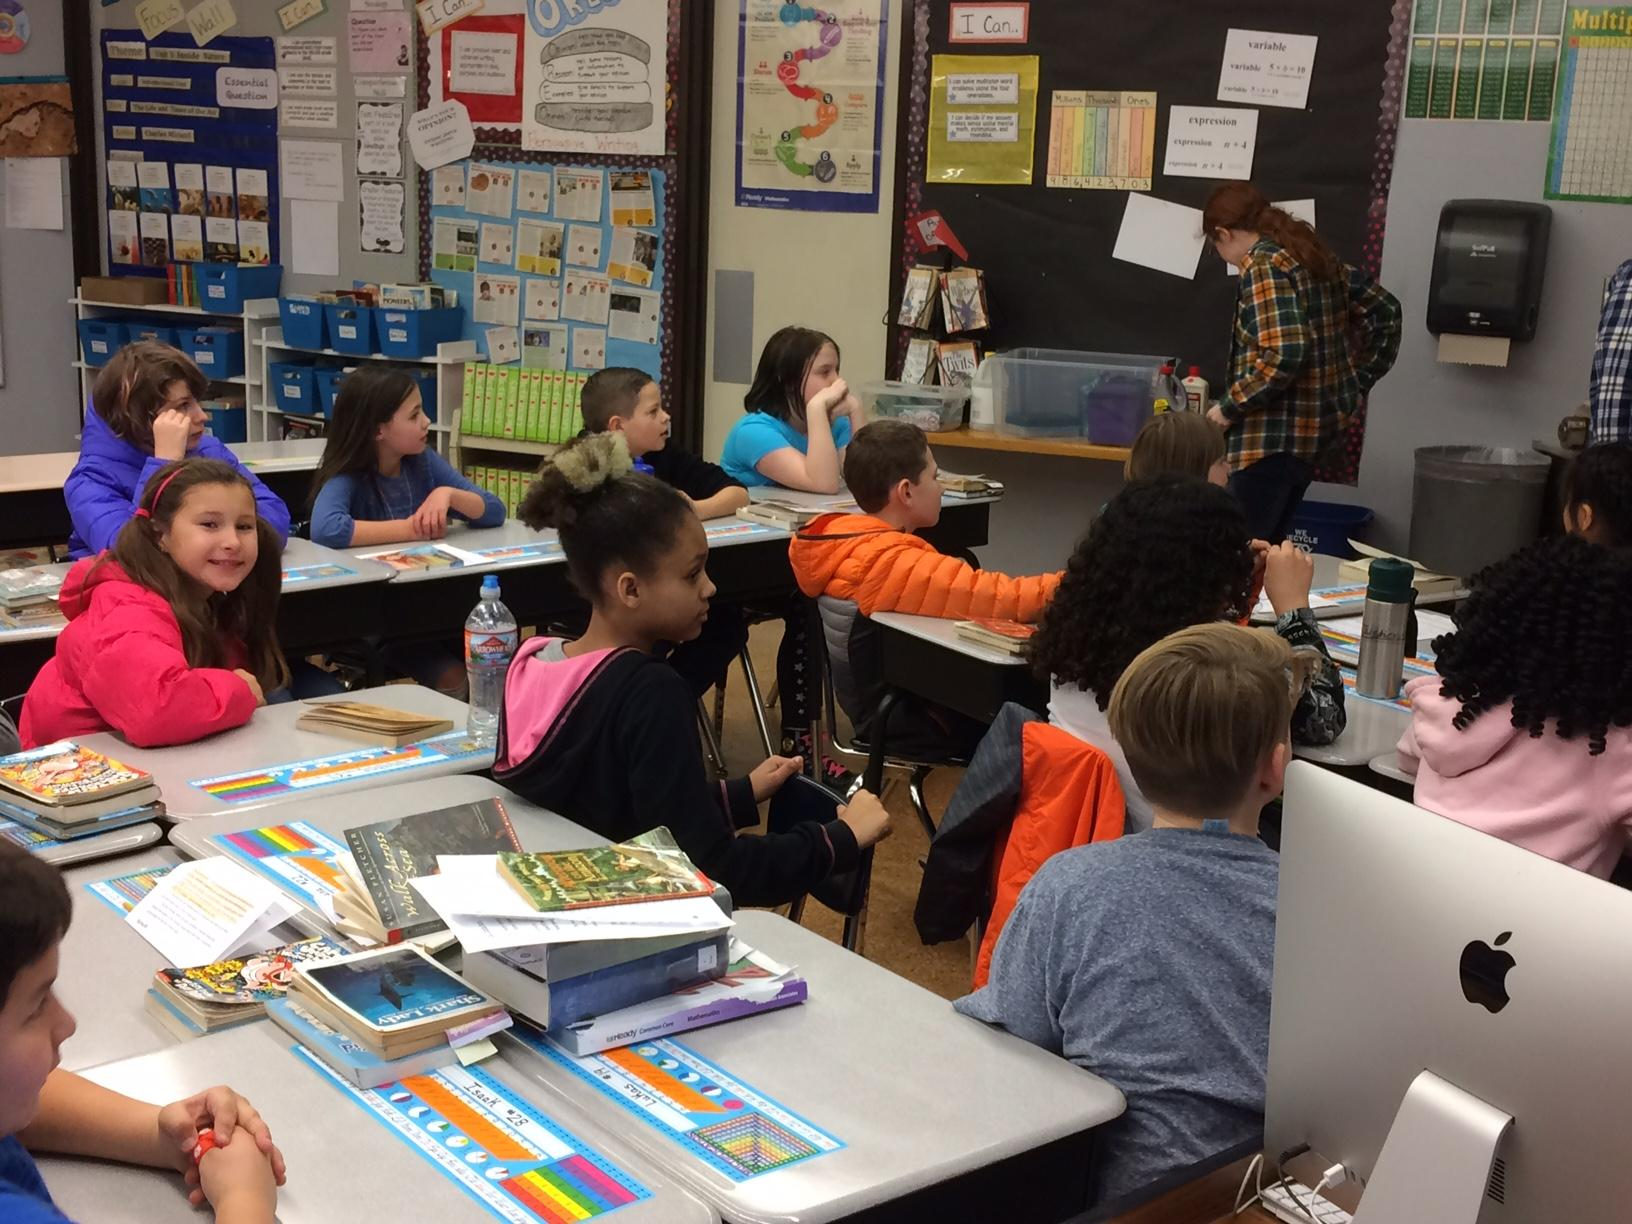 The group Students Opposed to Drugs and Alcohol from Springfield High School visited the 4th grade class of Kaylee Rogers at Douglas Garden Elementary Schools to share their message Thursday. (SBG)